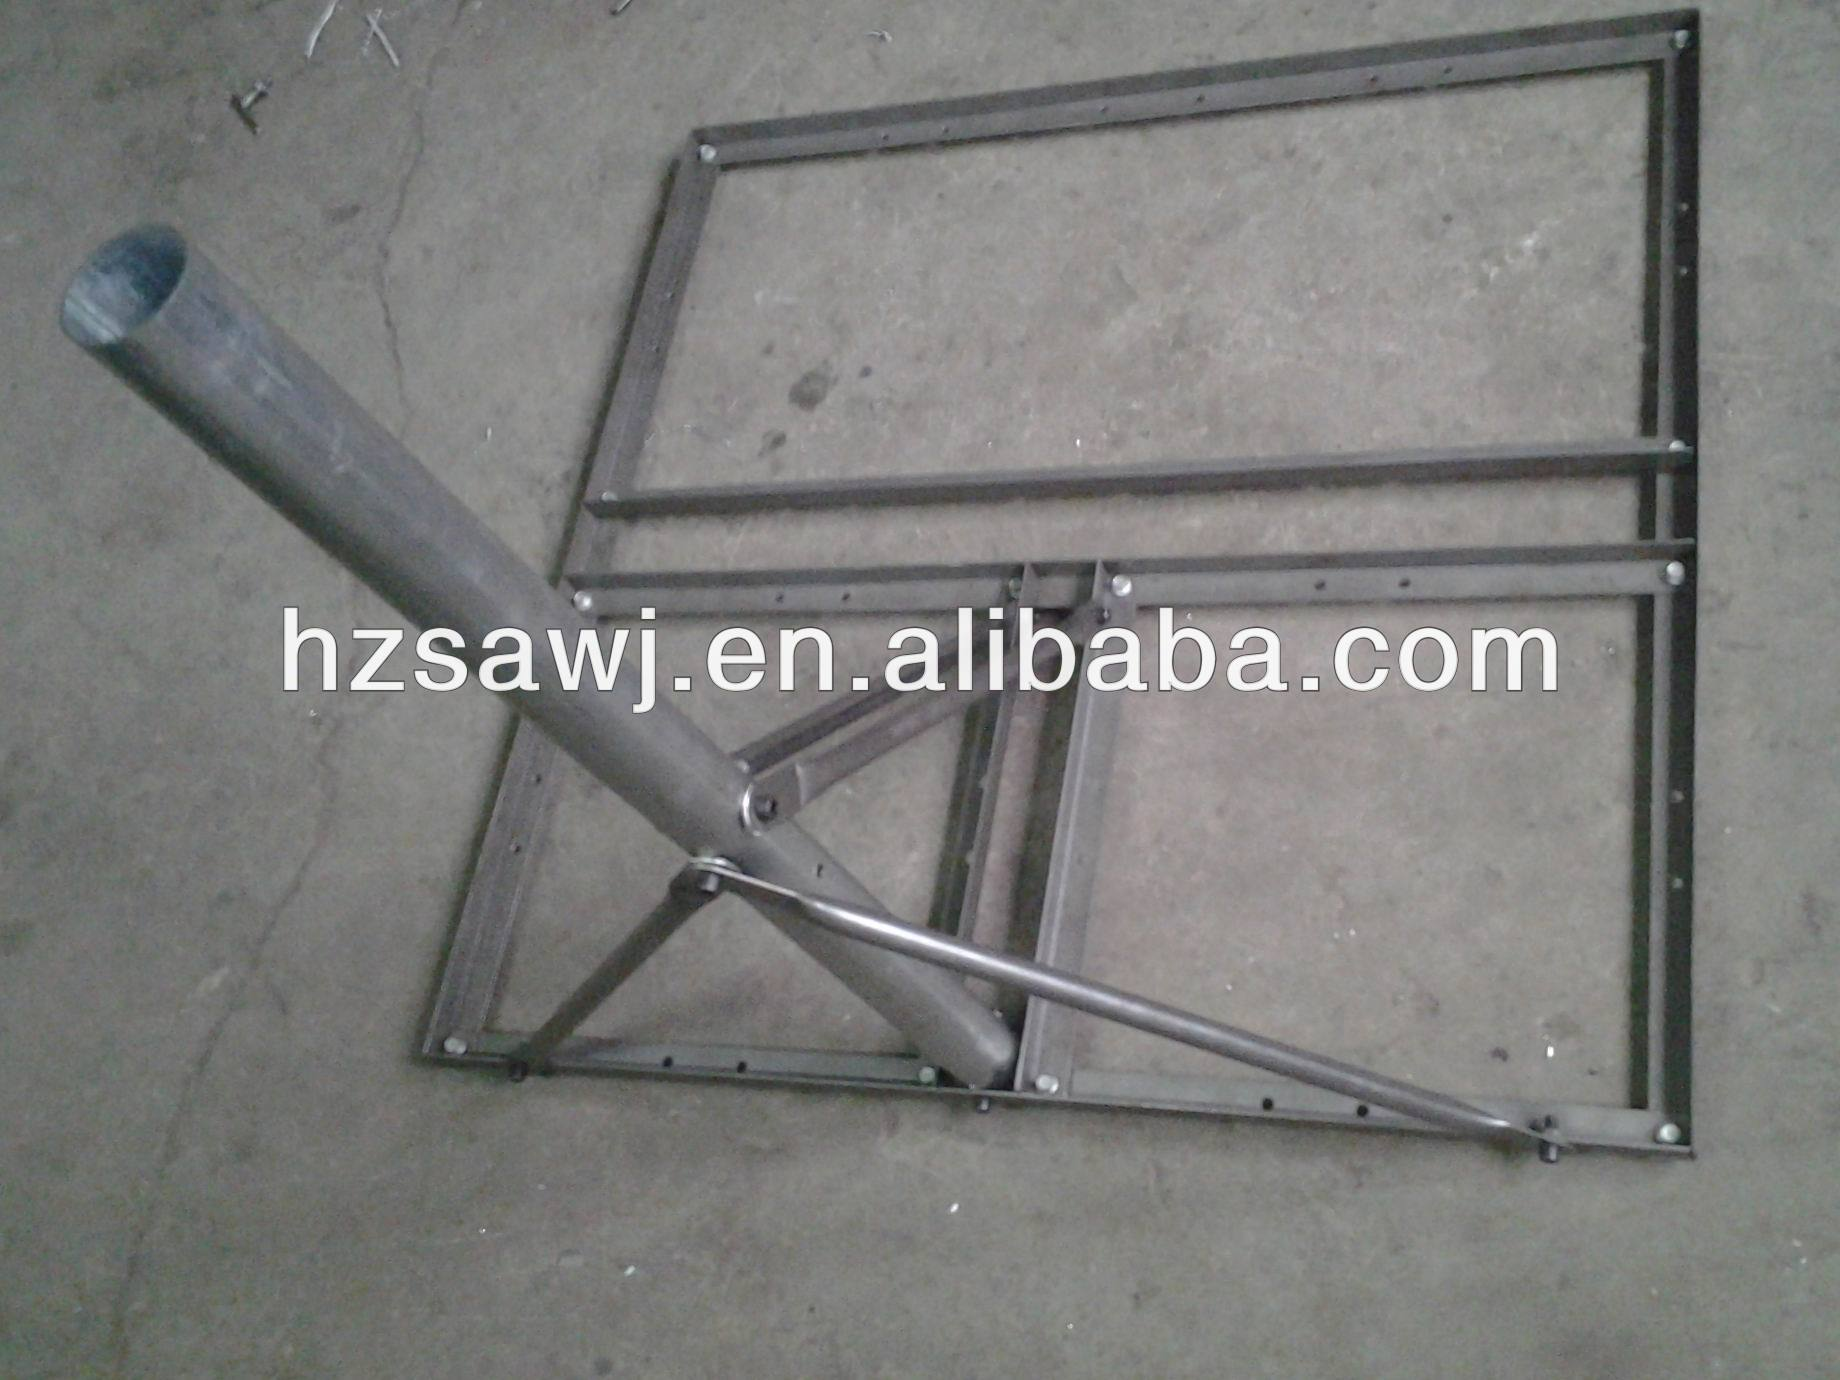 Satellite Non Penetrating Roof Mount Assembly   Buy Non Penetrating Antenna  Mount,Satellite Antenna Polar Mount,Universal Satellite Dish Mount Product  On ...